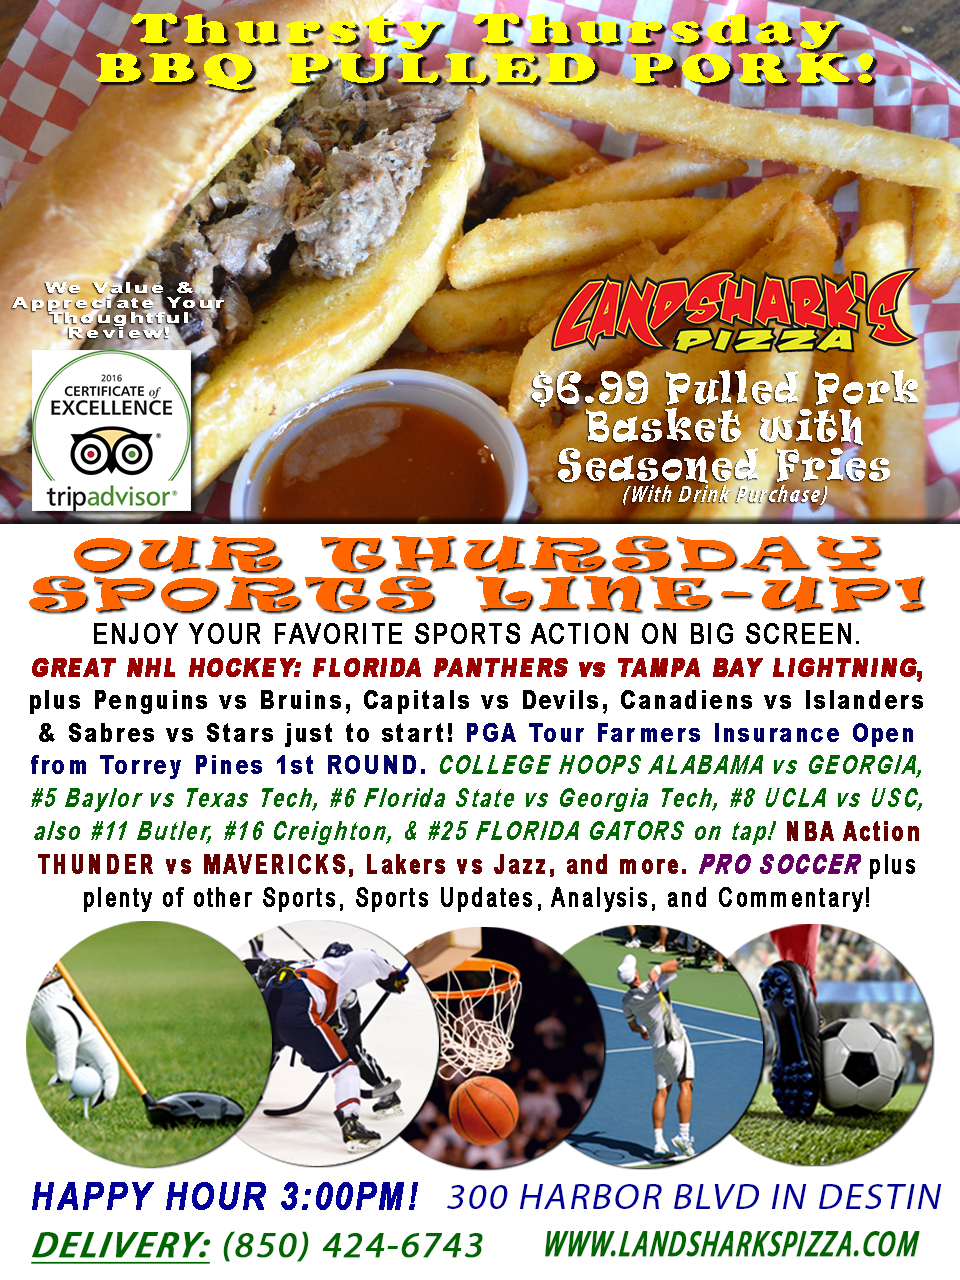 THURSTY THURSDAY BBQ SPECIAL! Mouthwatering BBQ in Destin for just $6.99! NHL Hockey, COLLEGE HOOPS, PGA Golf & NBA!